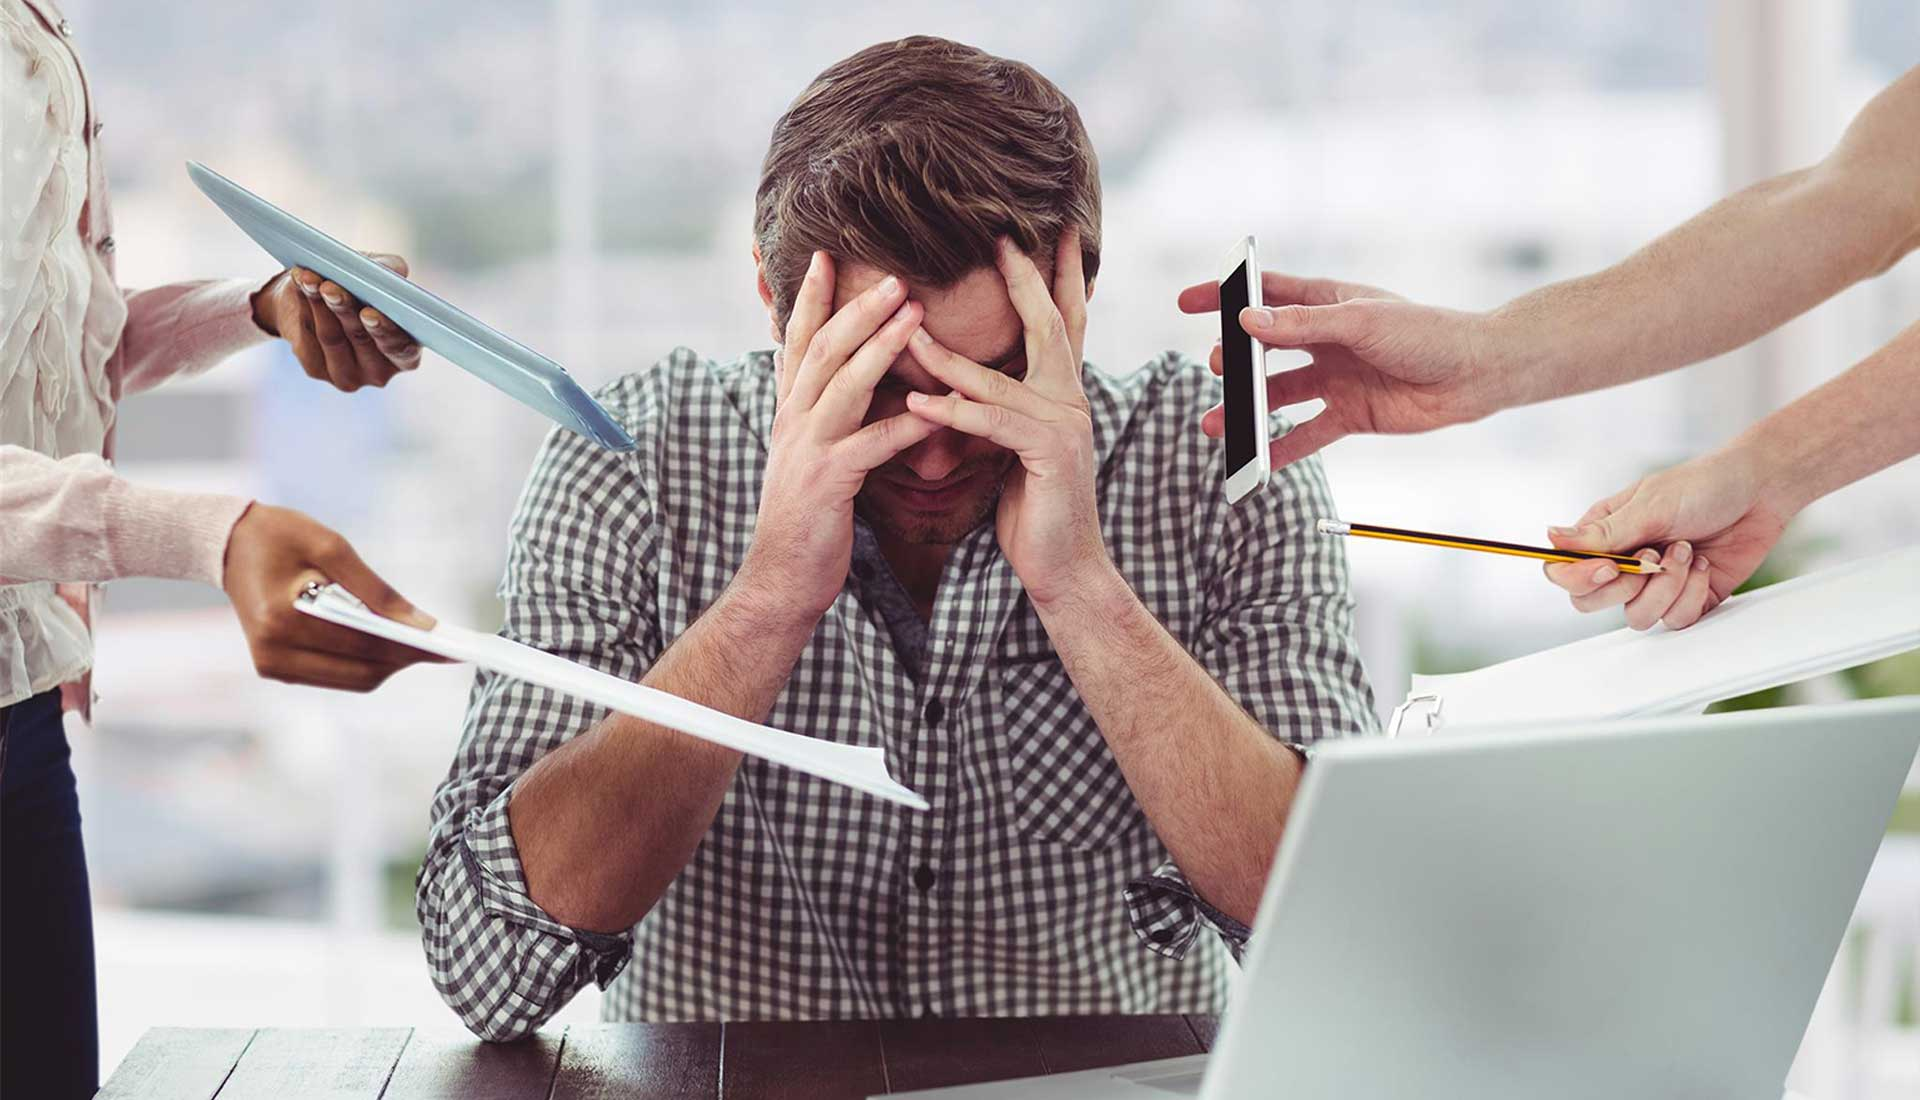 is-your-desk-job-killing-you-research-says-remote-working-can-help